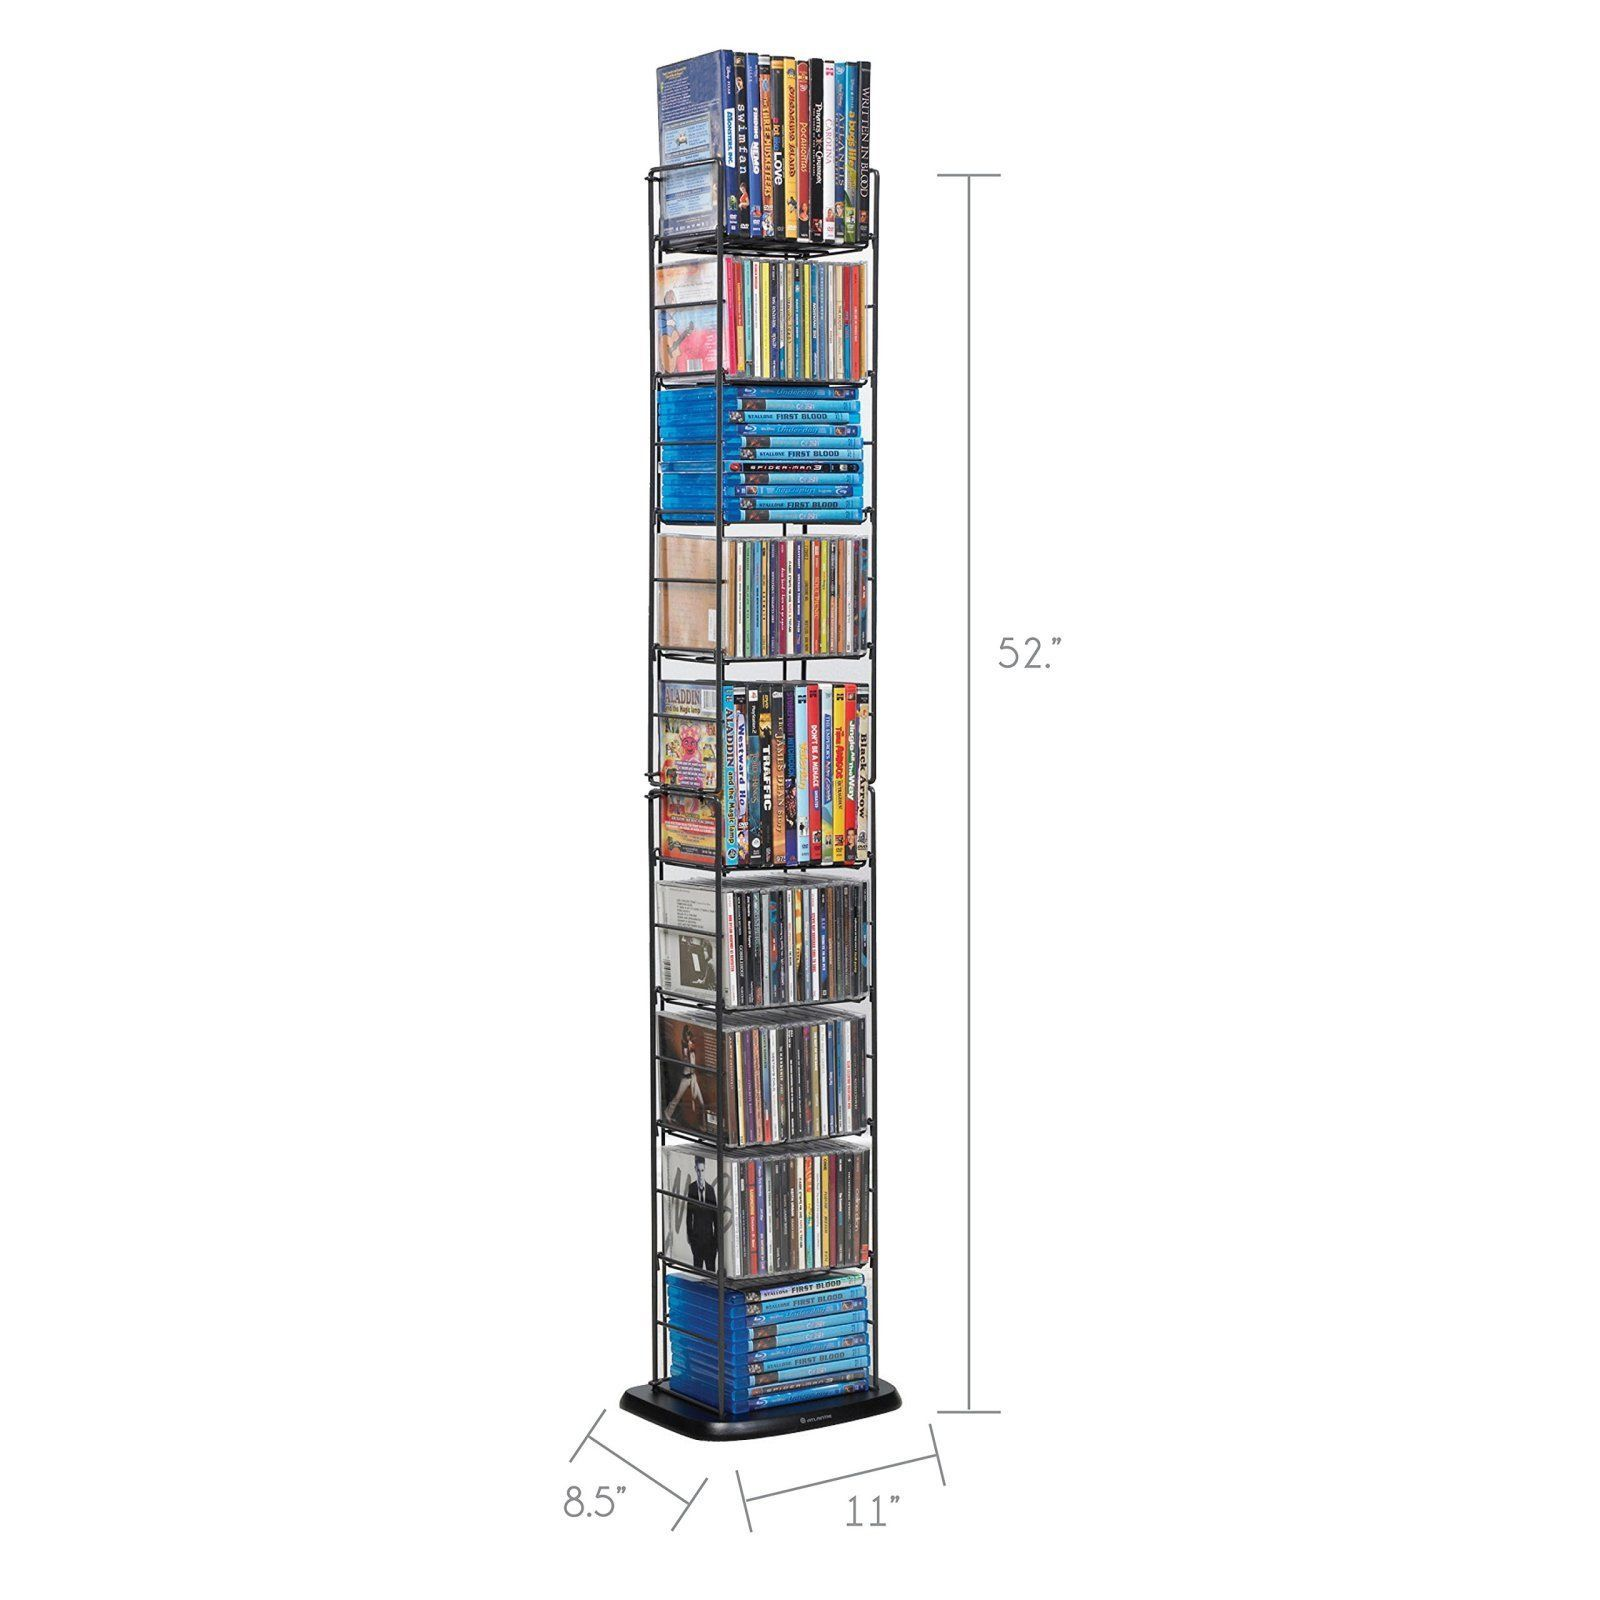 Cds Dvds Discs Rack Multimedia Storage Organizer Furniture Library Shelf Cabinet Home Garden Library Shelves Shelves Storage